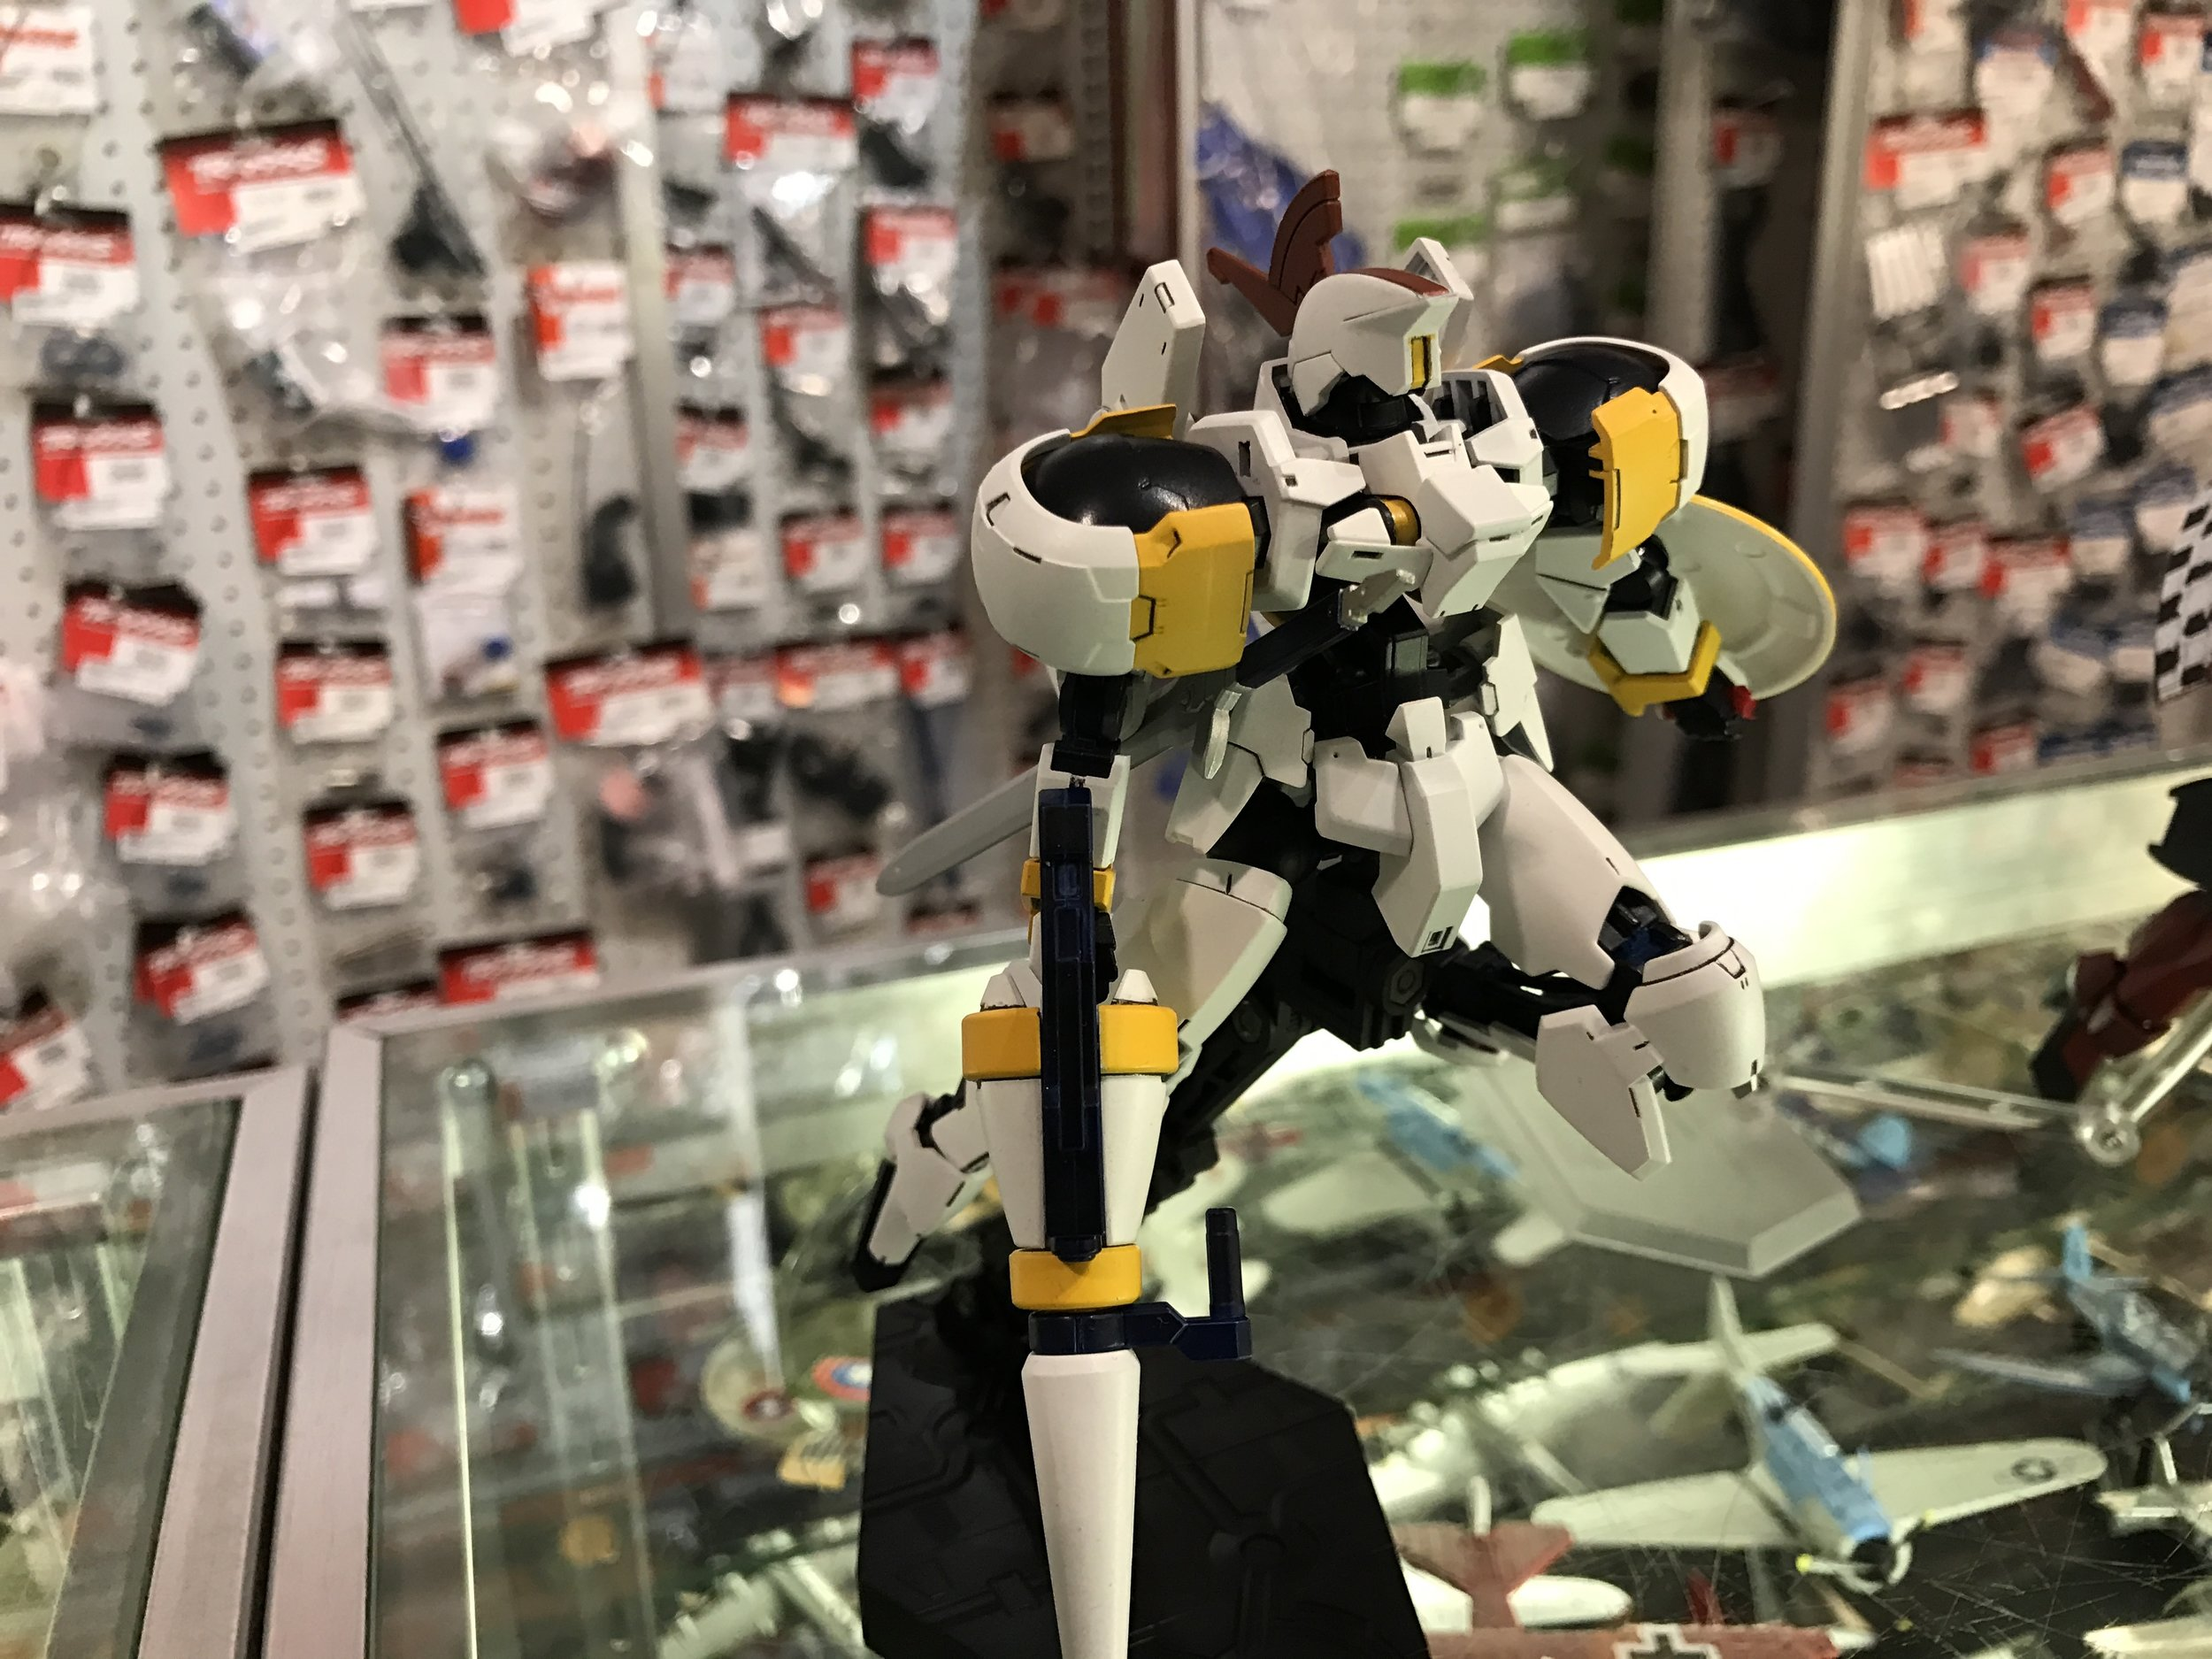 """""""Tallgraze"""" This kit was impressive to see in person. Very clean overall, and the design clearly expresses iconic elements of the Tallgese."""